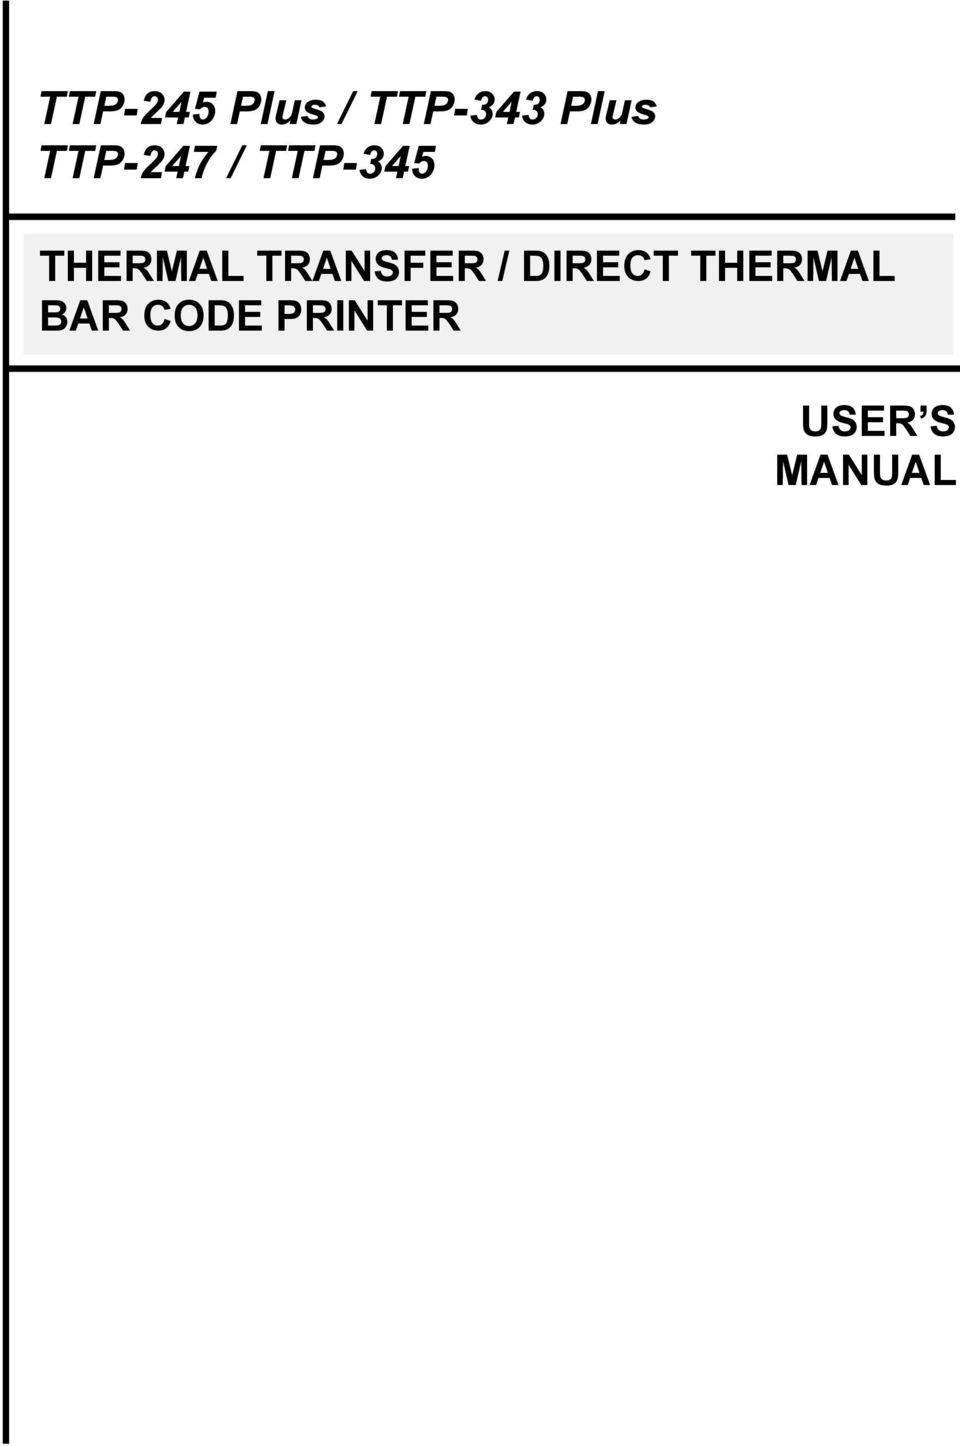 TRANSFER / DIRECT THERMAL